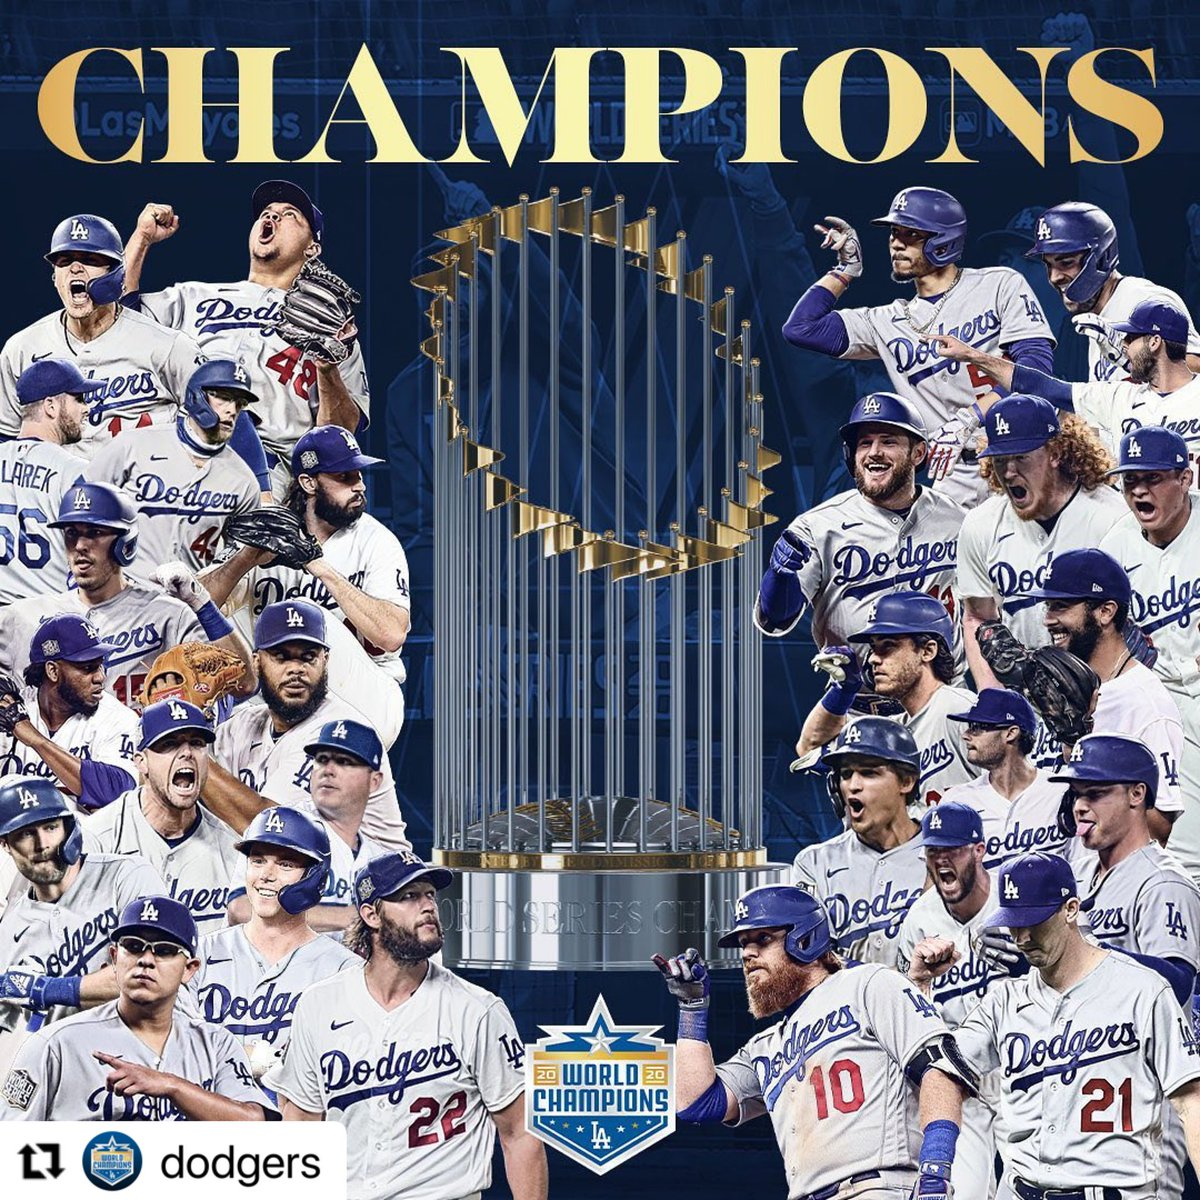 Congrats to @Dodgers and @DodgersFdn on an exceptional year in the midst of so much adversity! #JackieRobinson #SportsHistory